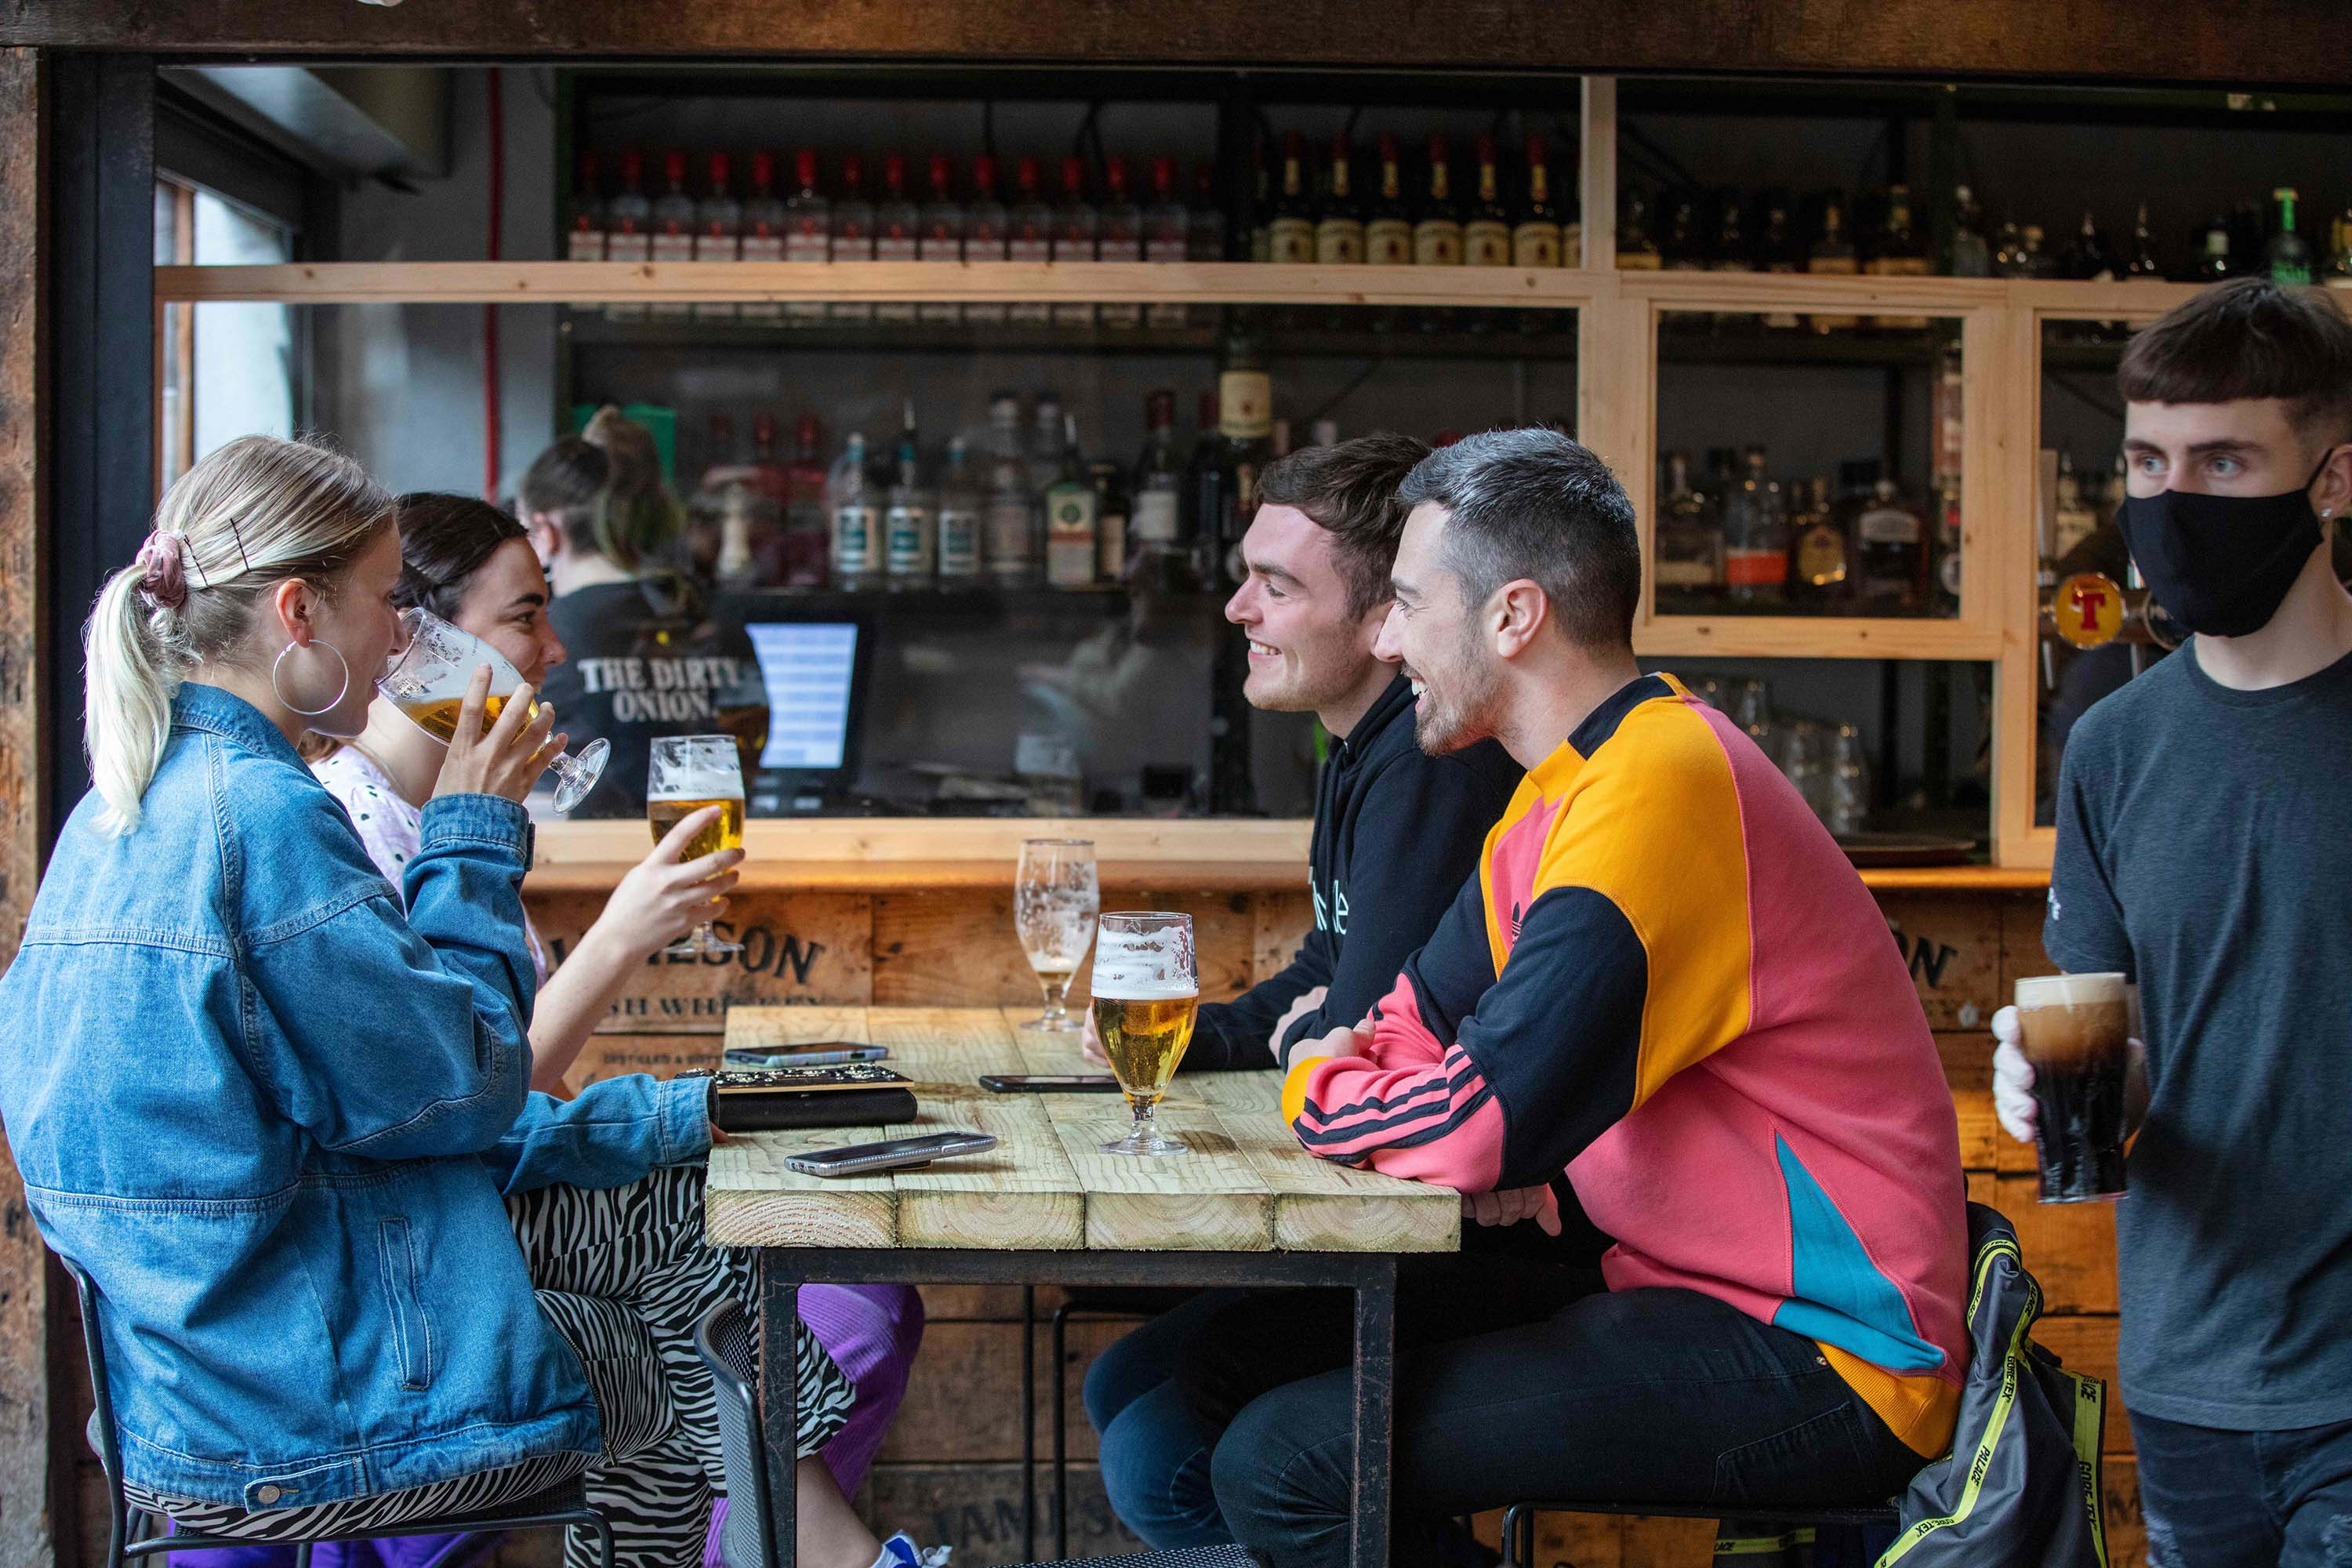 People socialize at the Dirty Onion Bar & Restaurant in Belfast on July 3, as pubs reopened their doors following the enforced closure due to the coronavirus pandemic.